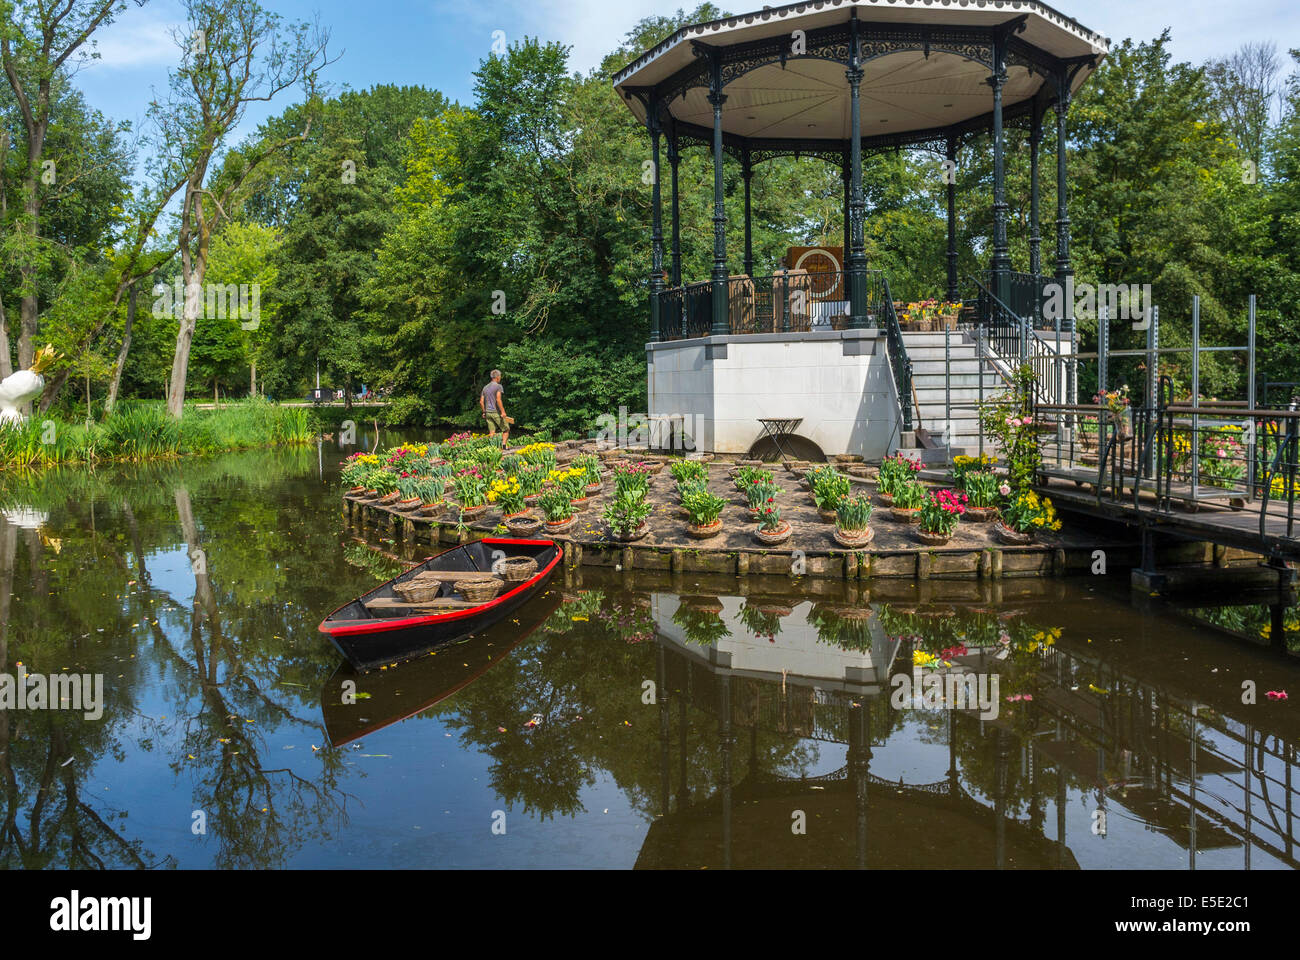 Amsterdam, Holland, Tulip Flower Garden On Pond Island In Vondel Park  (Central Park Amstellodamois